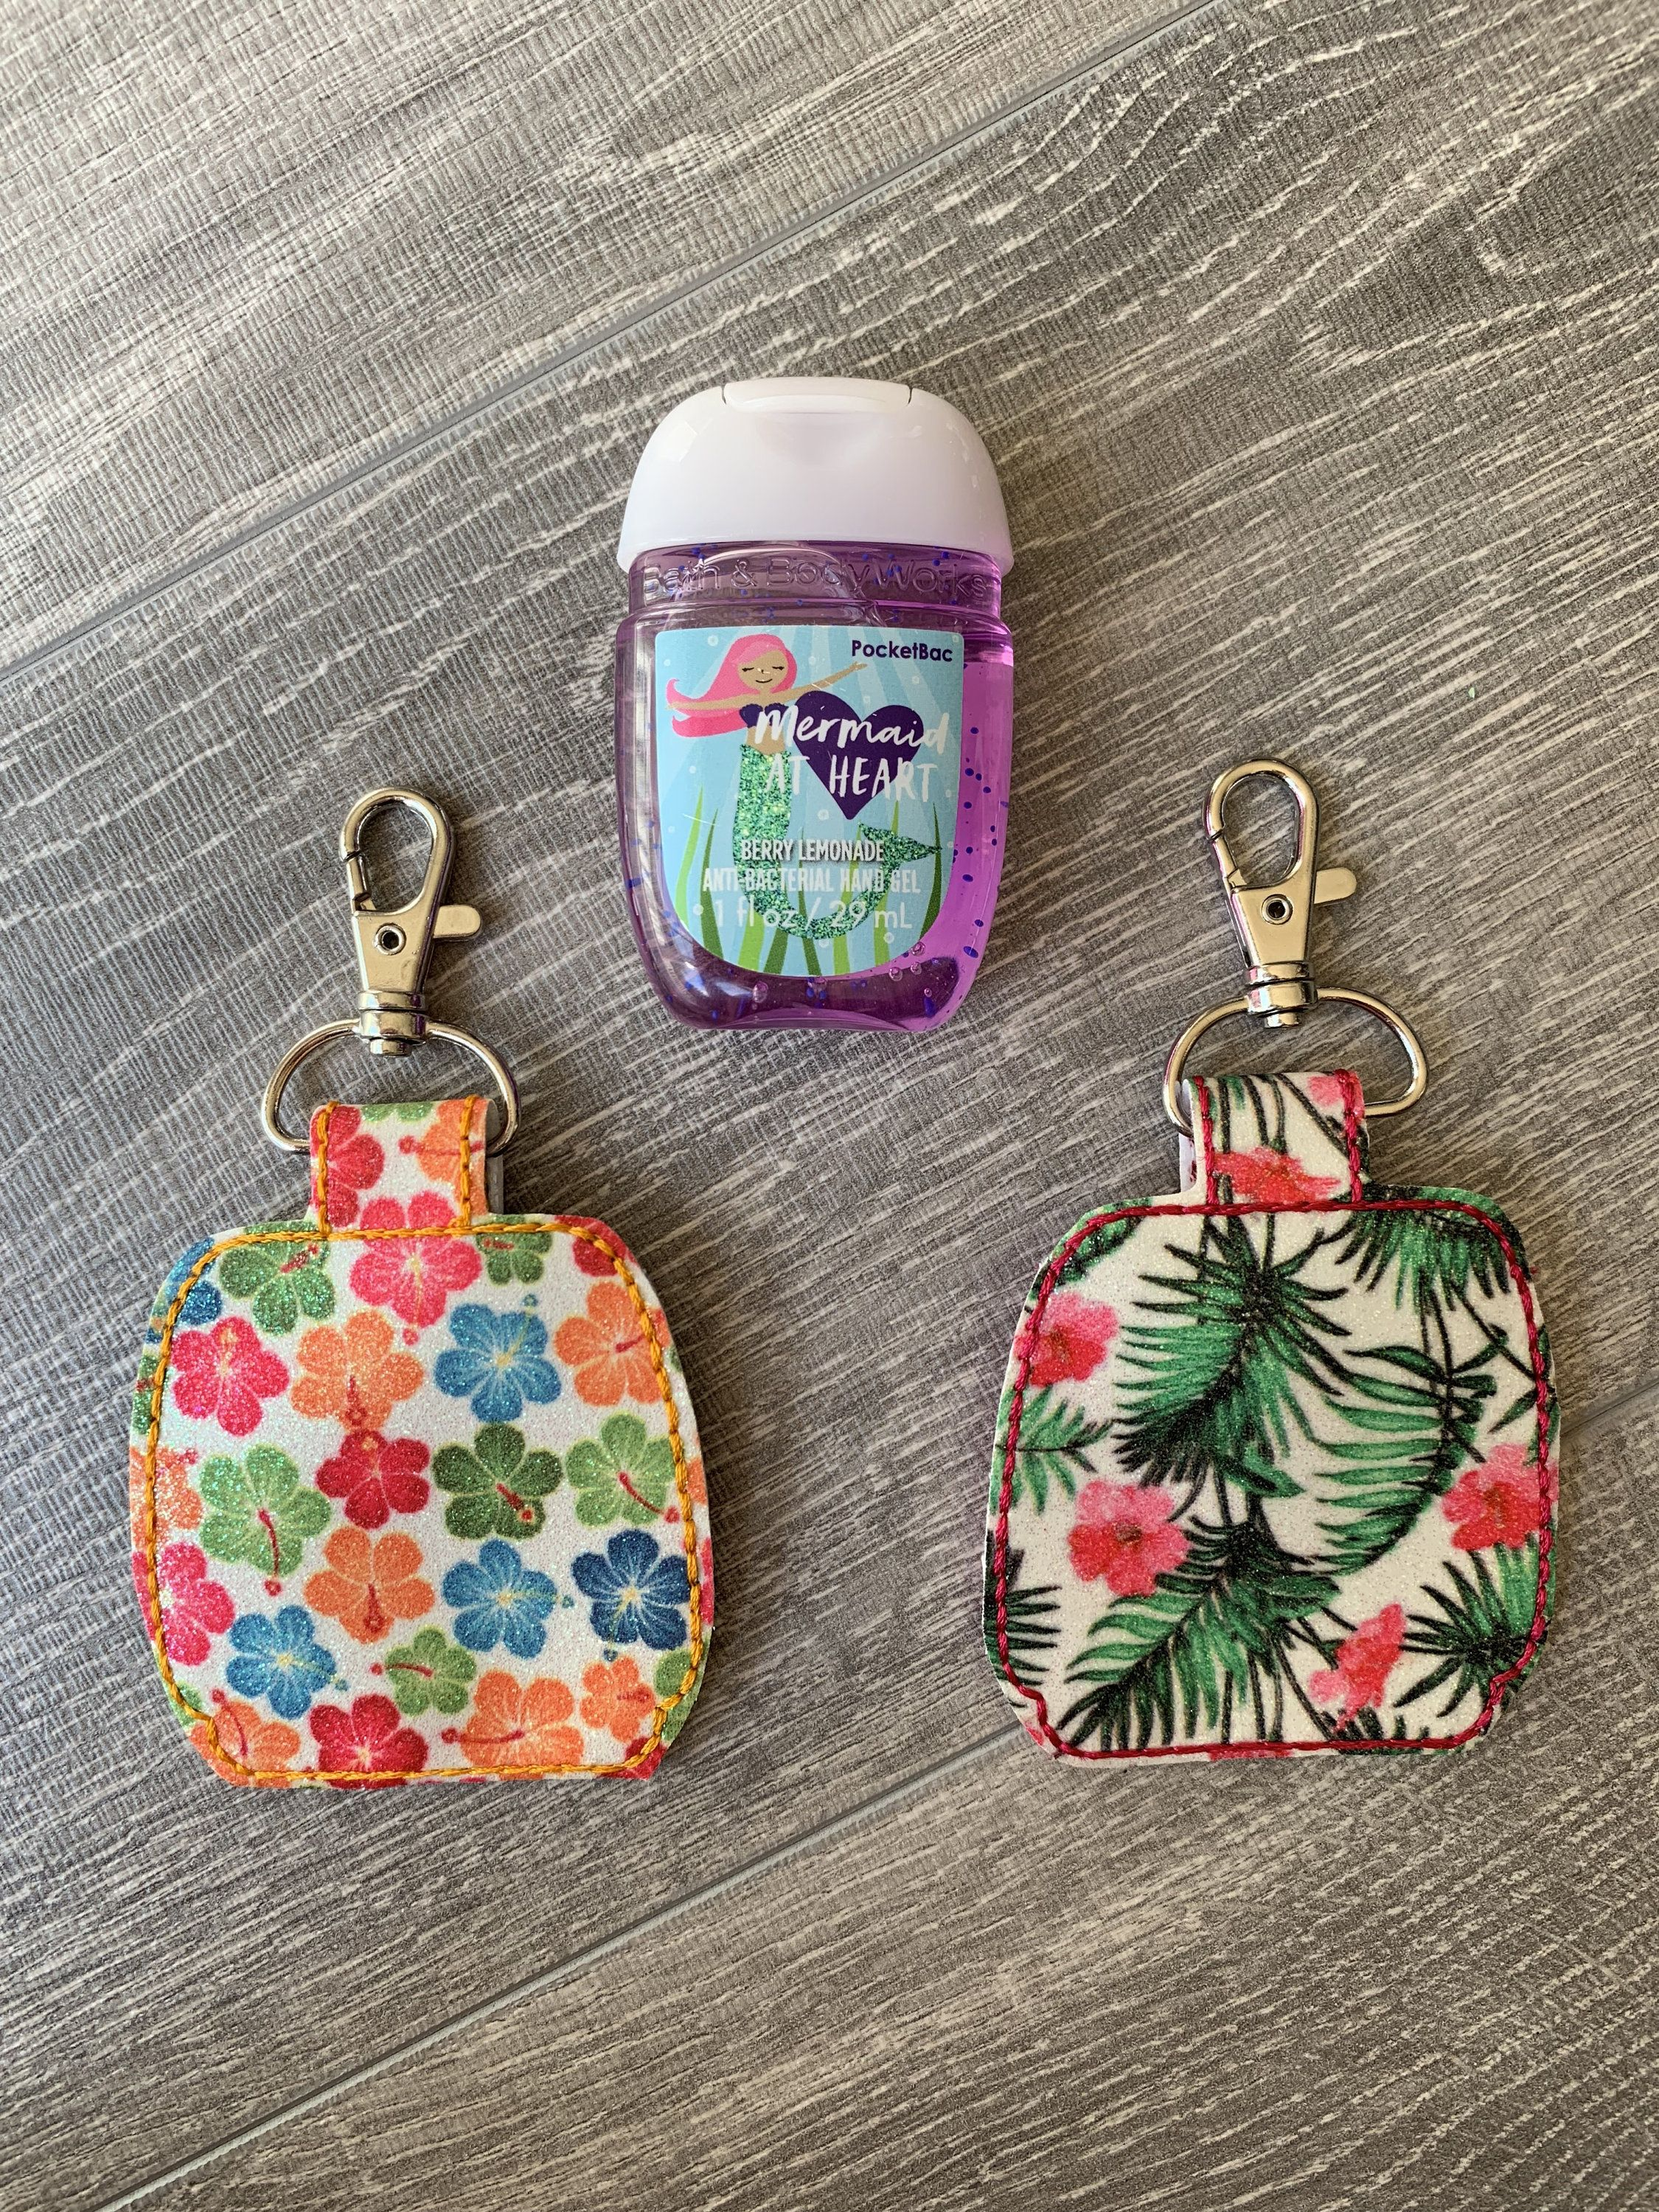 Bus Rider Bag Tag Hand Sanitizer School Bus Party Back To